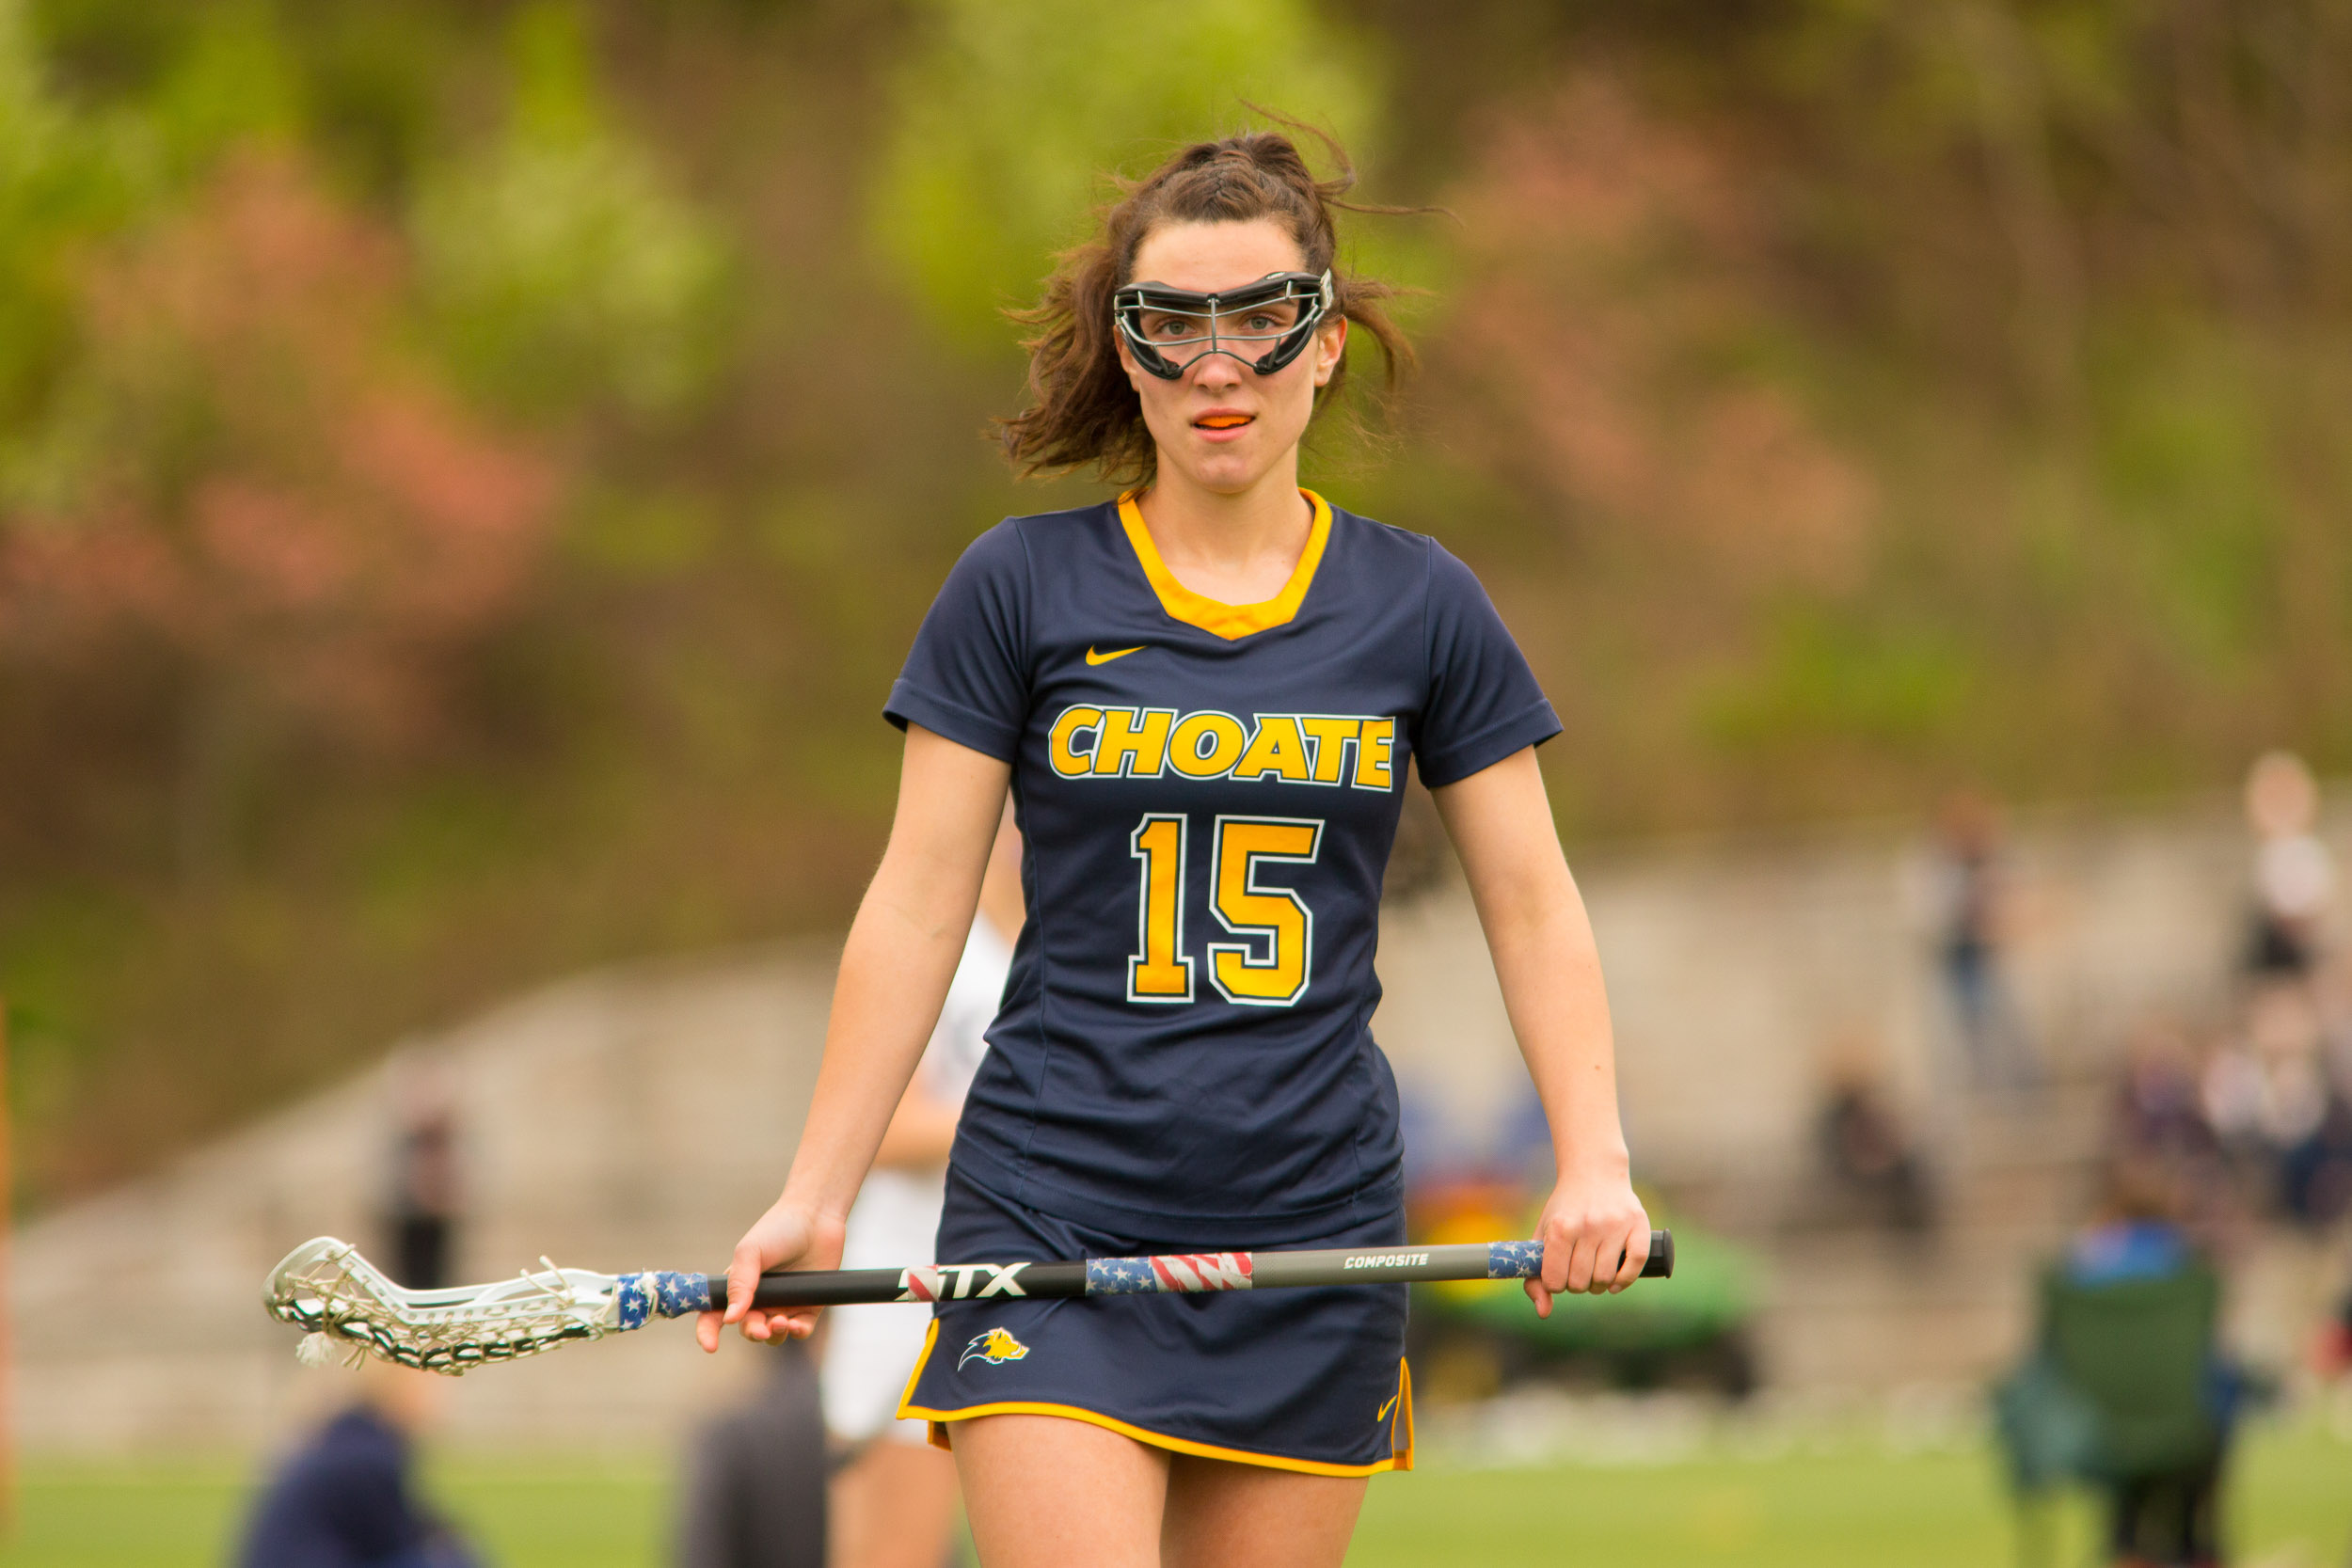 Choate Rosemary Hall girls lacrosse Michael Branscom Photography.